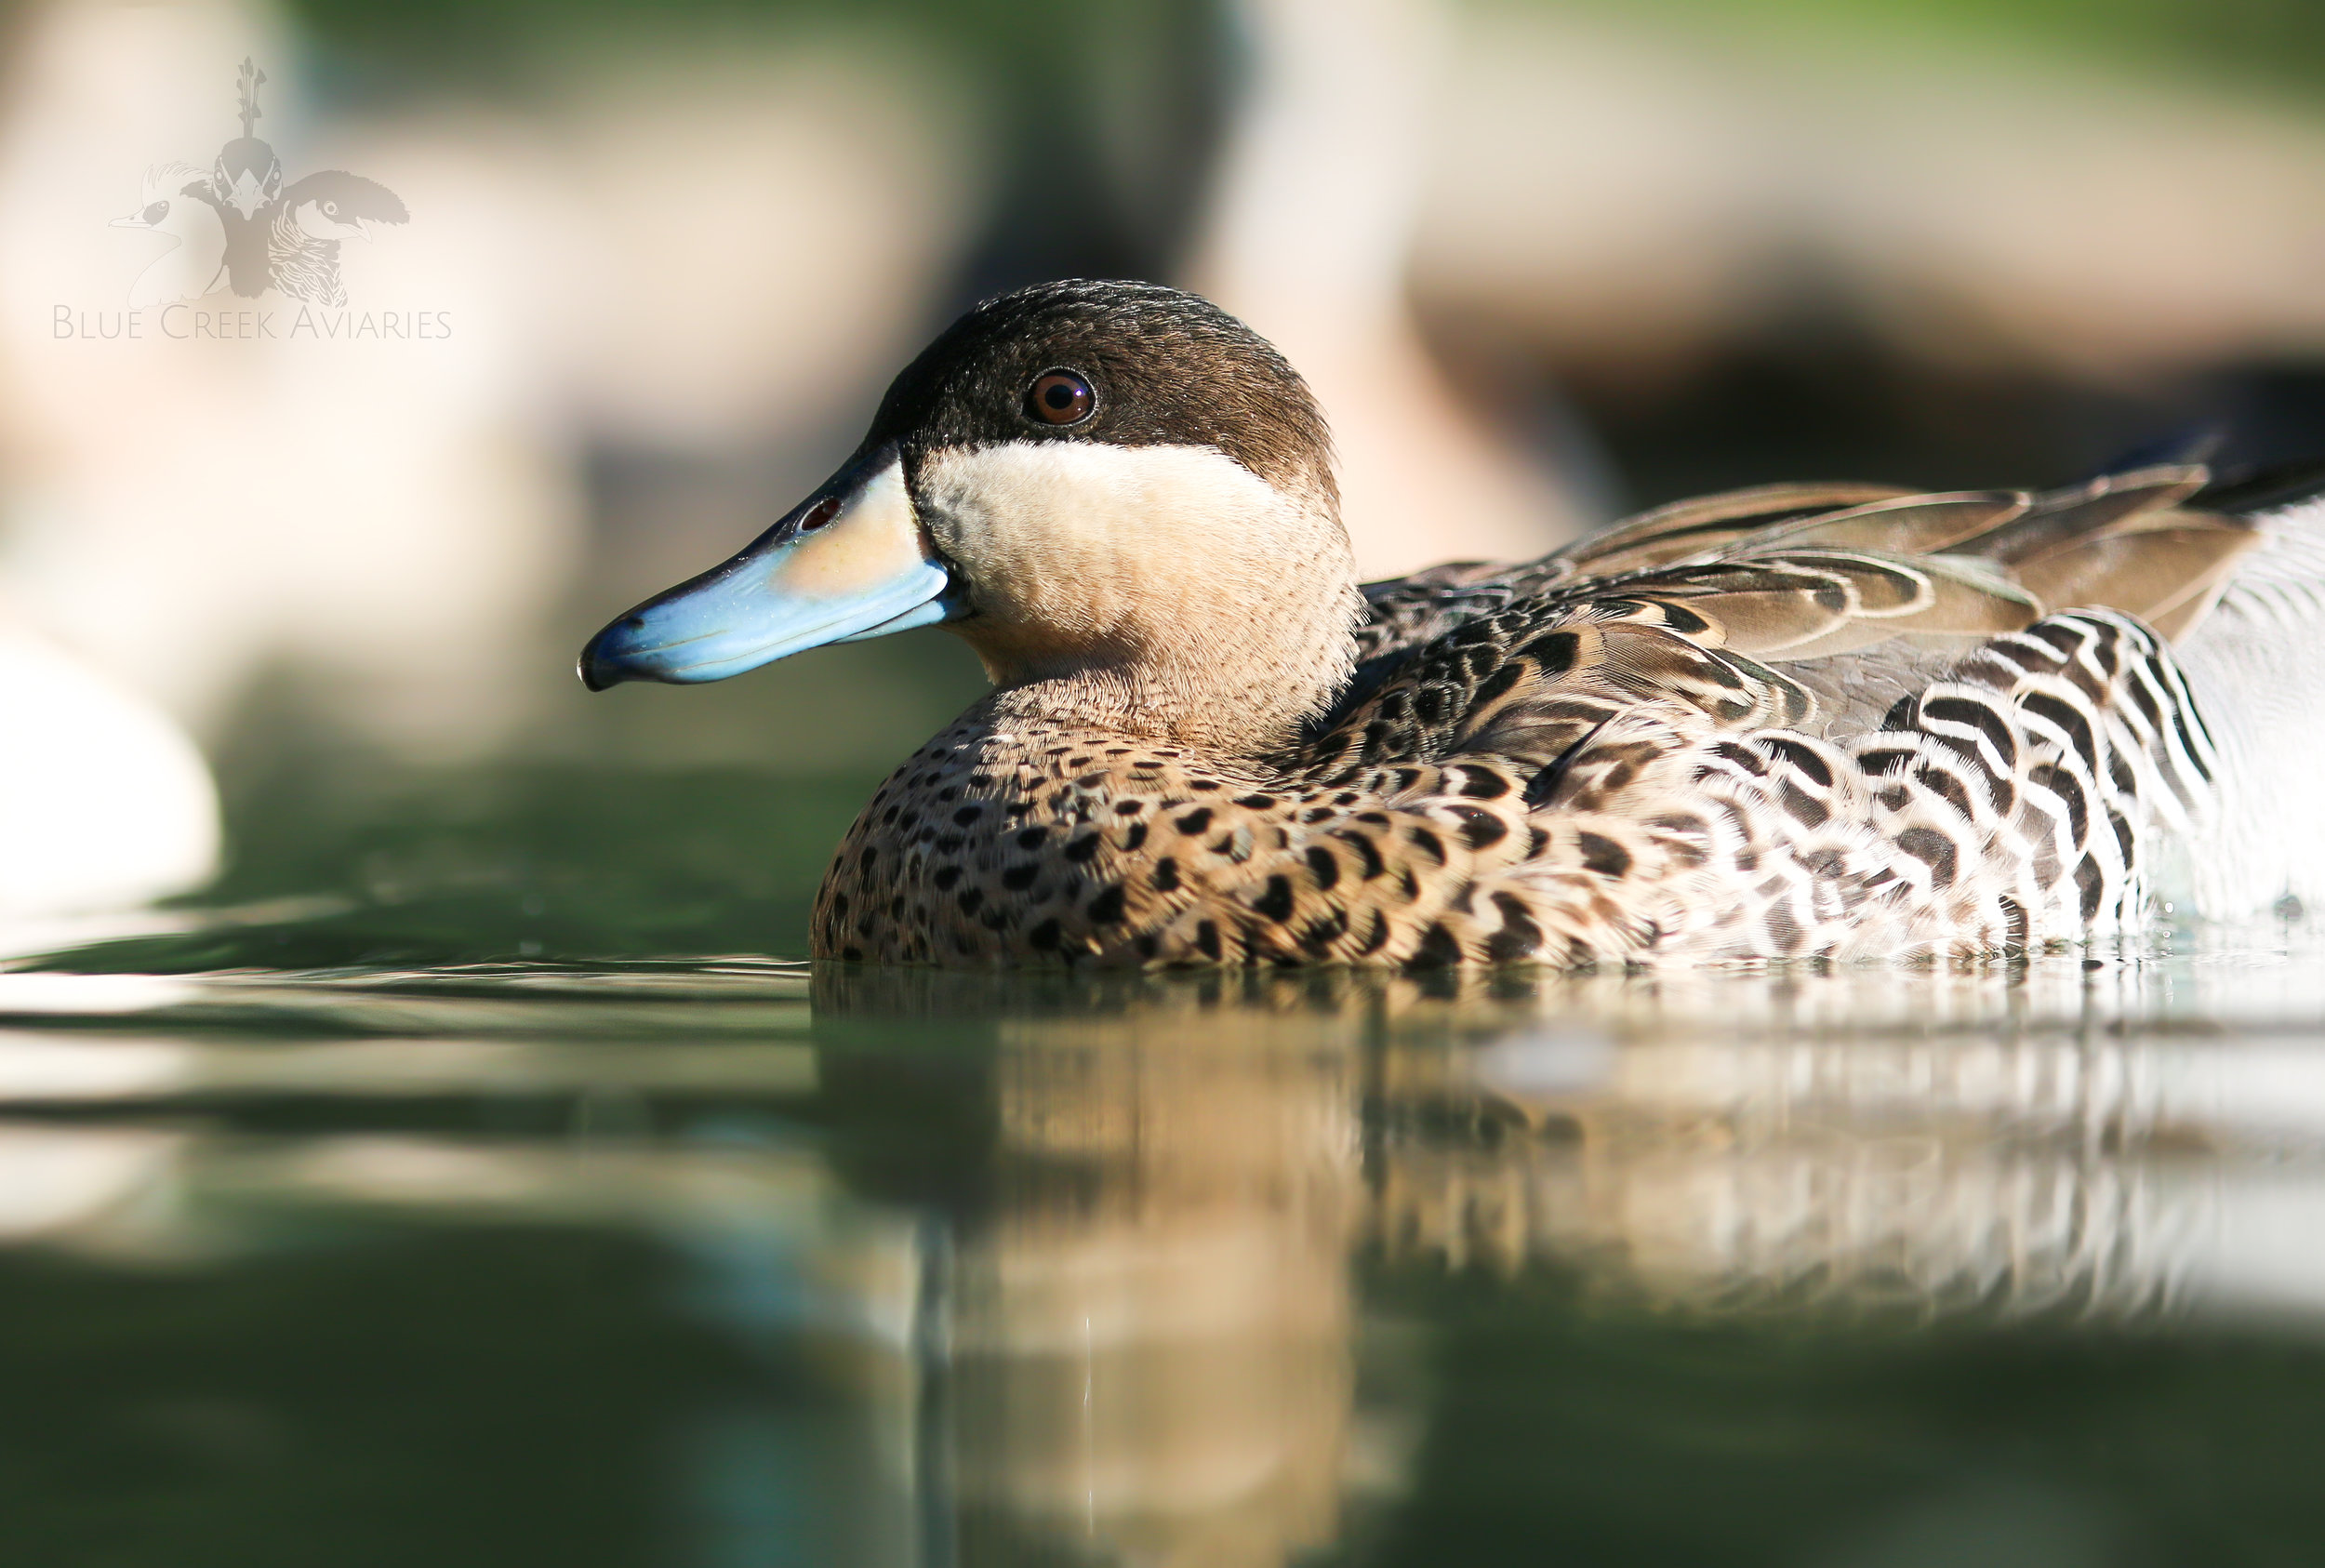 Juvenile silver teal male